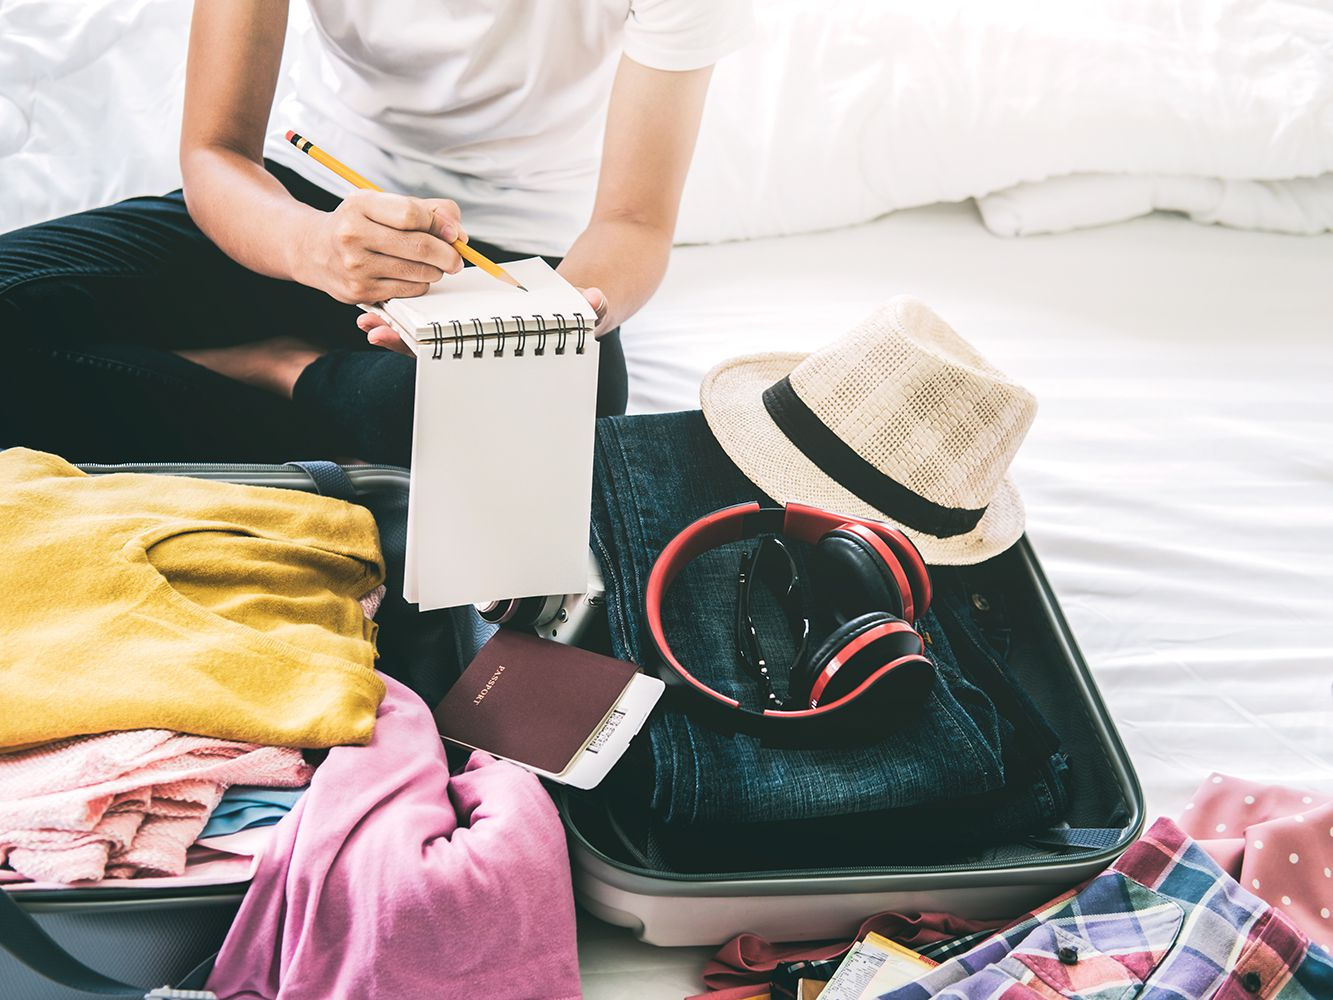 Six Home Tasks to Tackle Before Leaving for Vacation